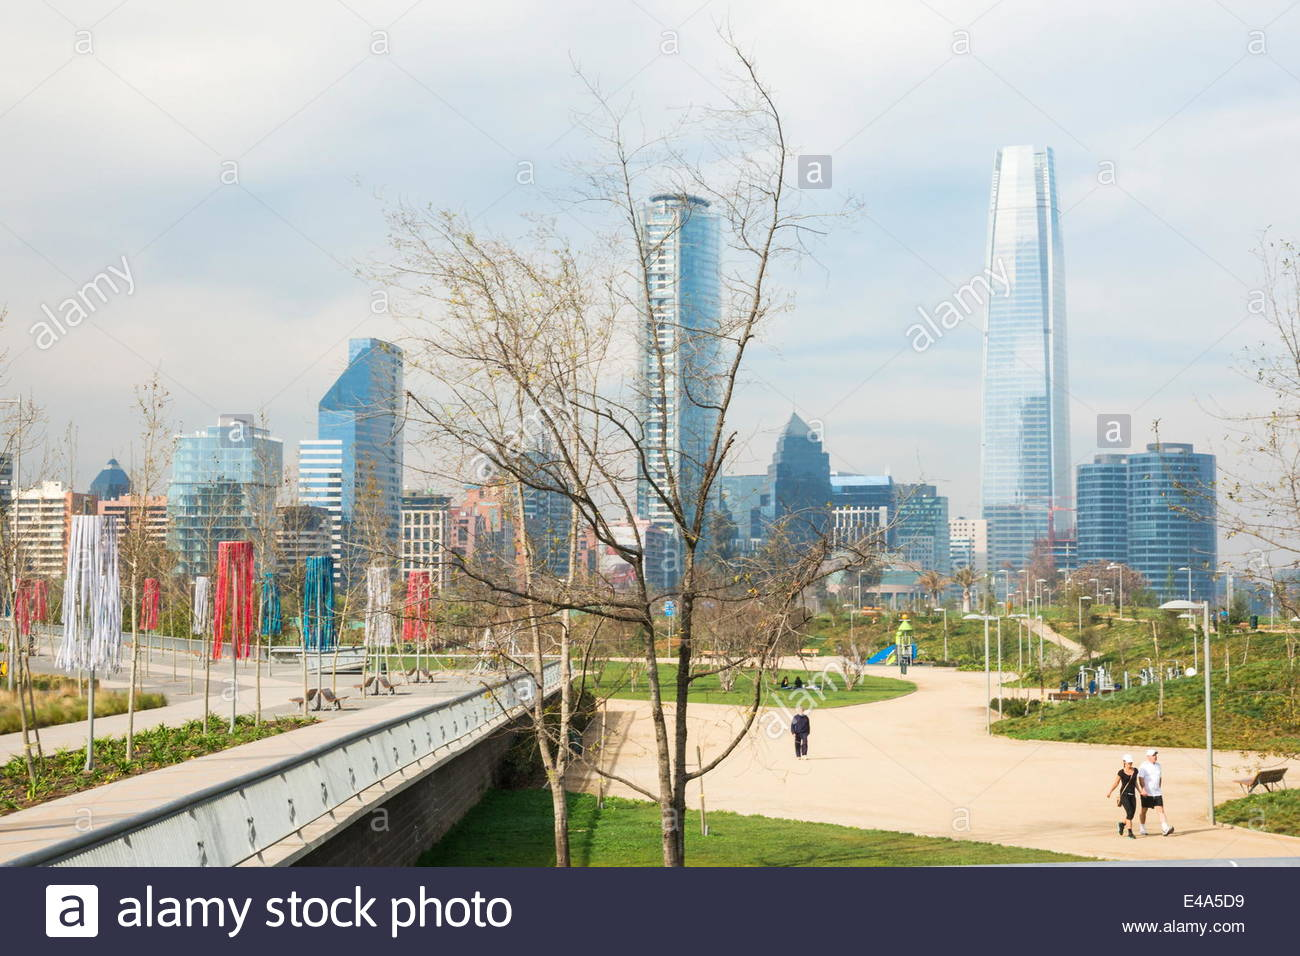 Overview of skyscrapers downtown from Bicentennial Park, Santiago, Chile, South America - Stock Image